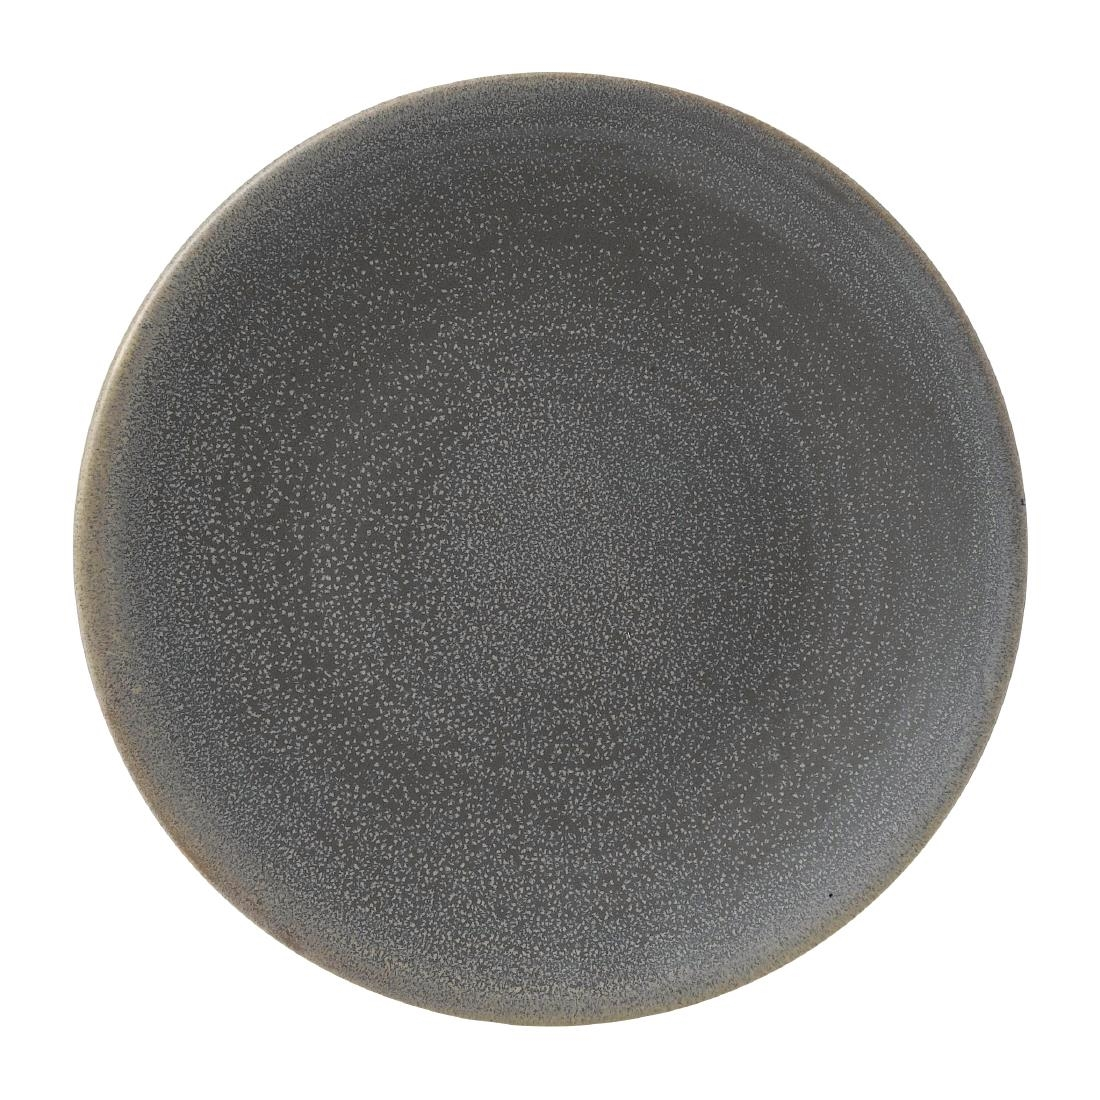 Image of Dudson Evo Granite Coupe Plate 203mm (Pack of 6) Pack of 6